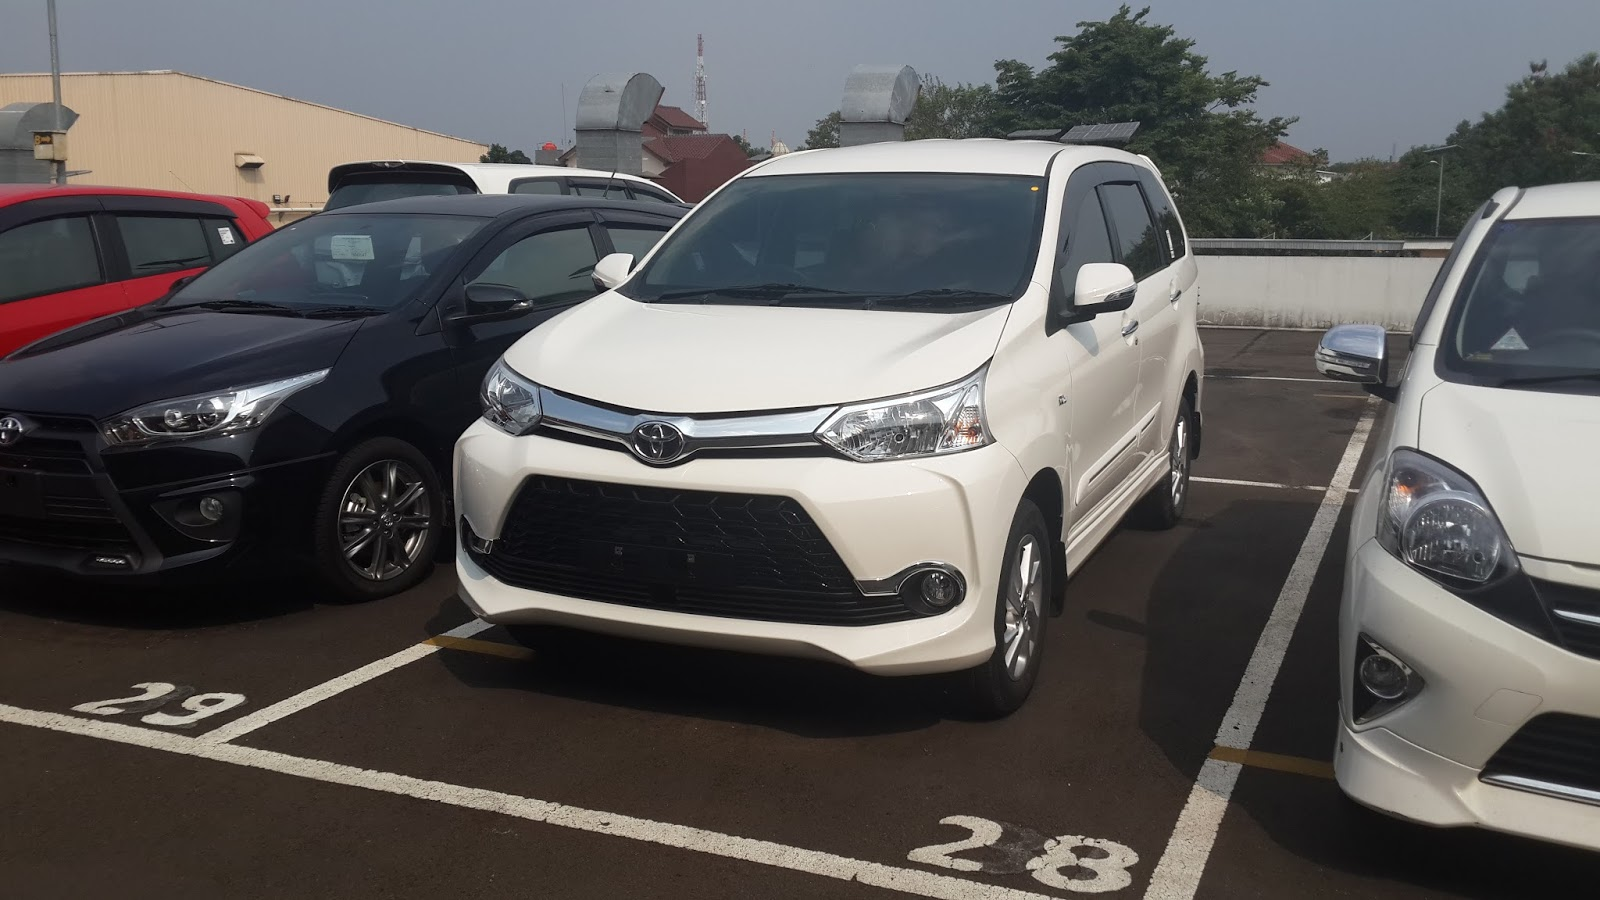 dimensi grand new avanza type g 1.3 toyota all bogor foto